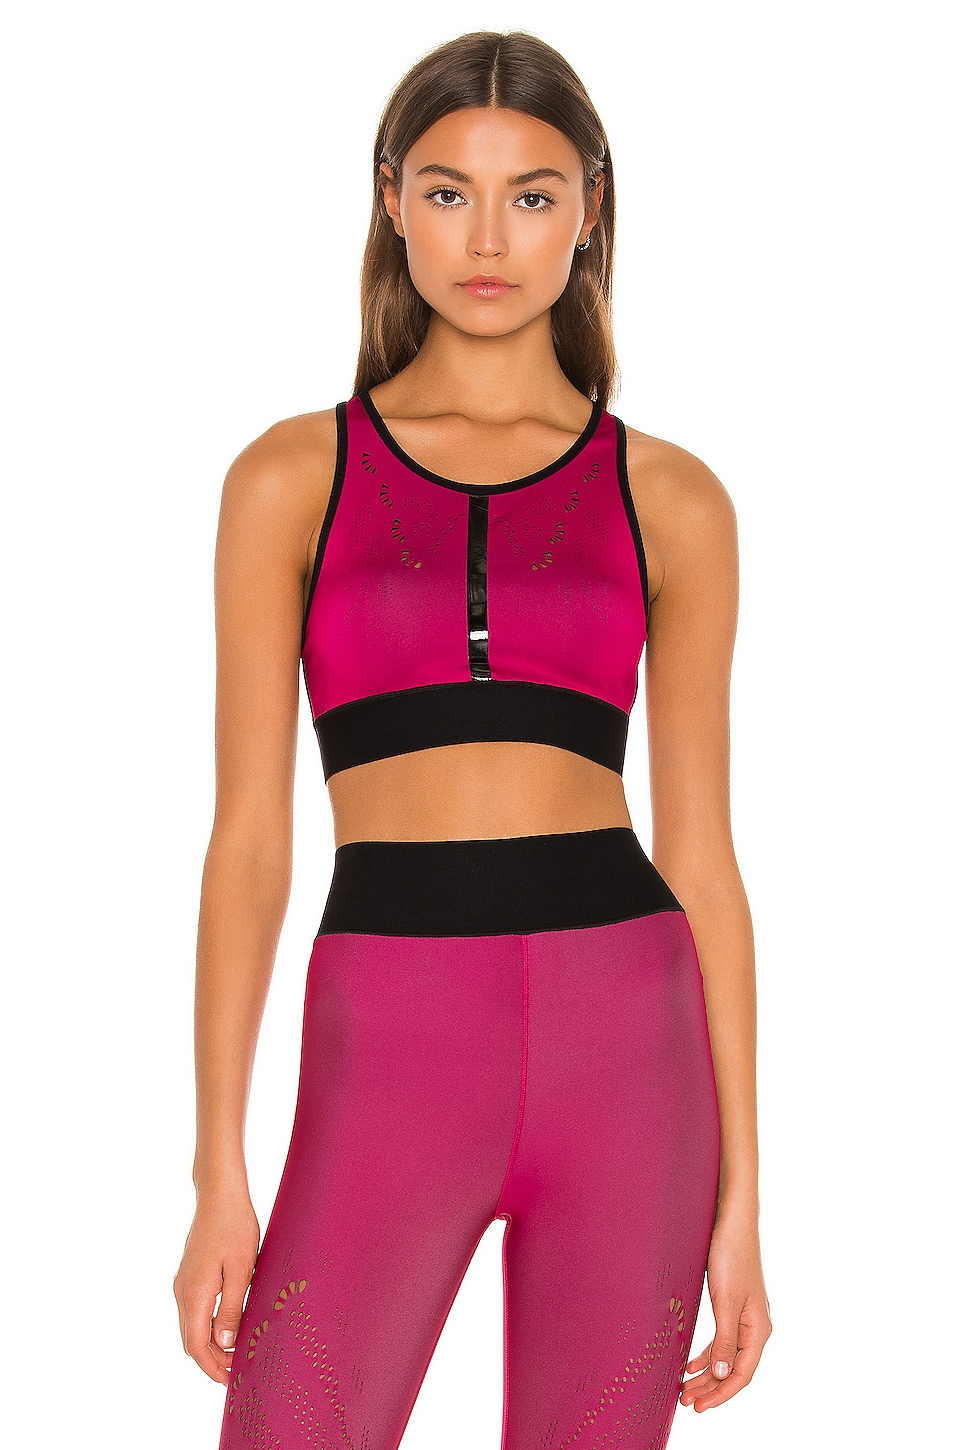 ultracor Viceroy Altair Bra in Hot Pink